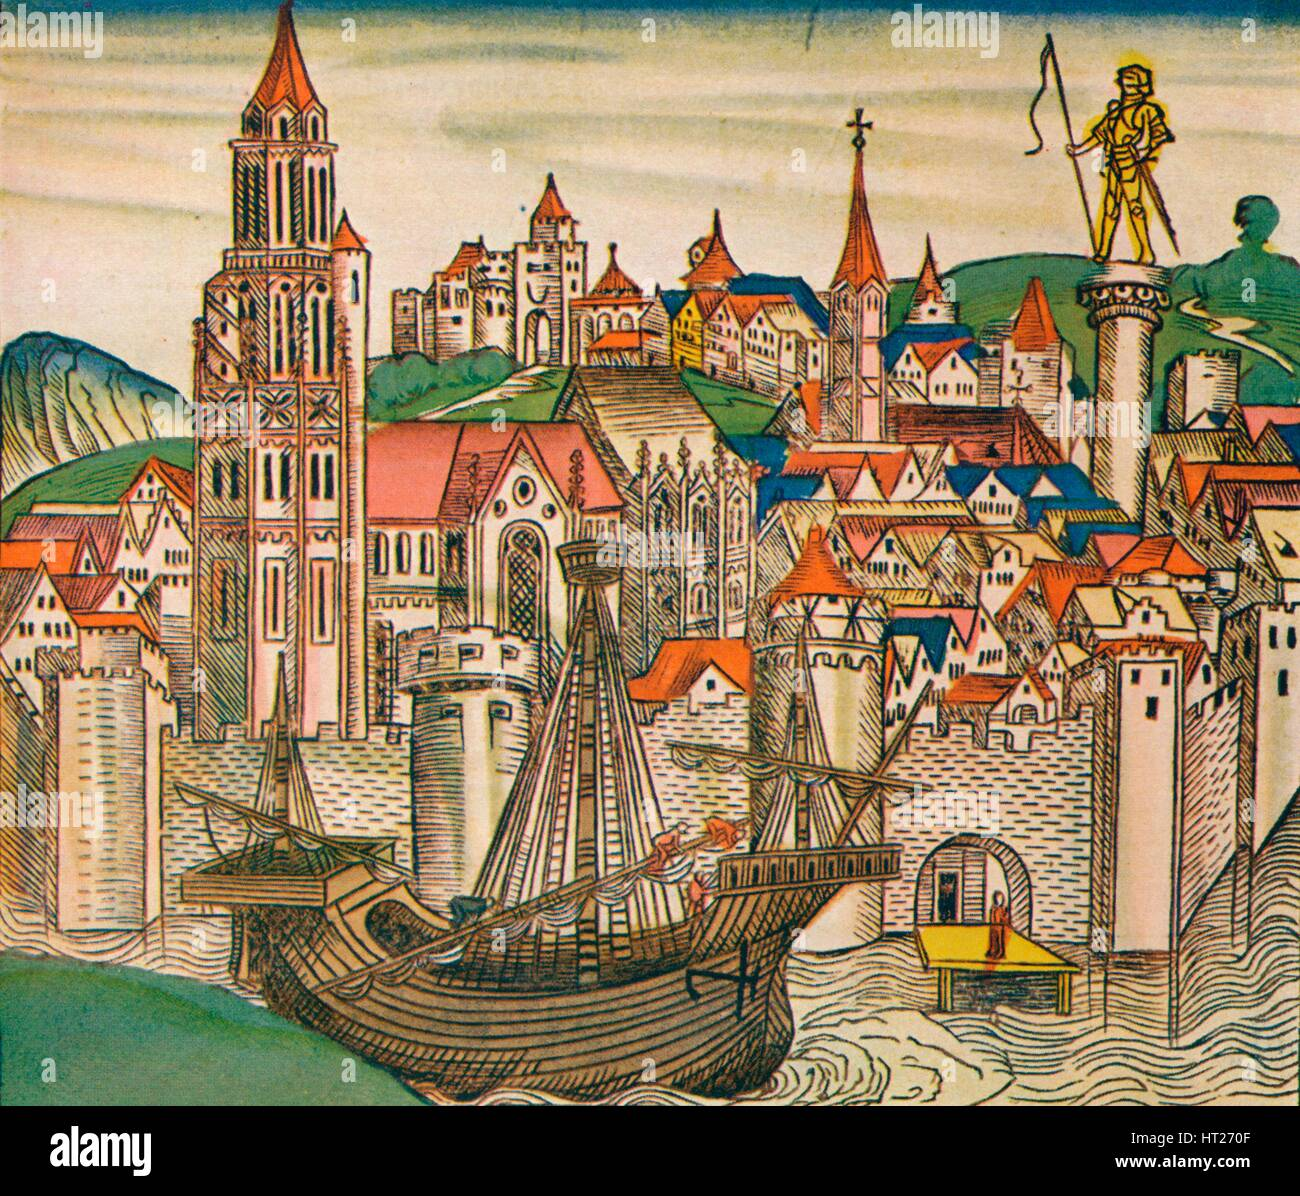 'The City of Treviso with a Carrack', 1493. Artist: Unknown. - Stock Image